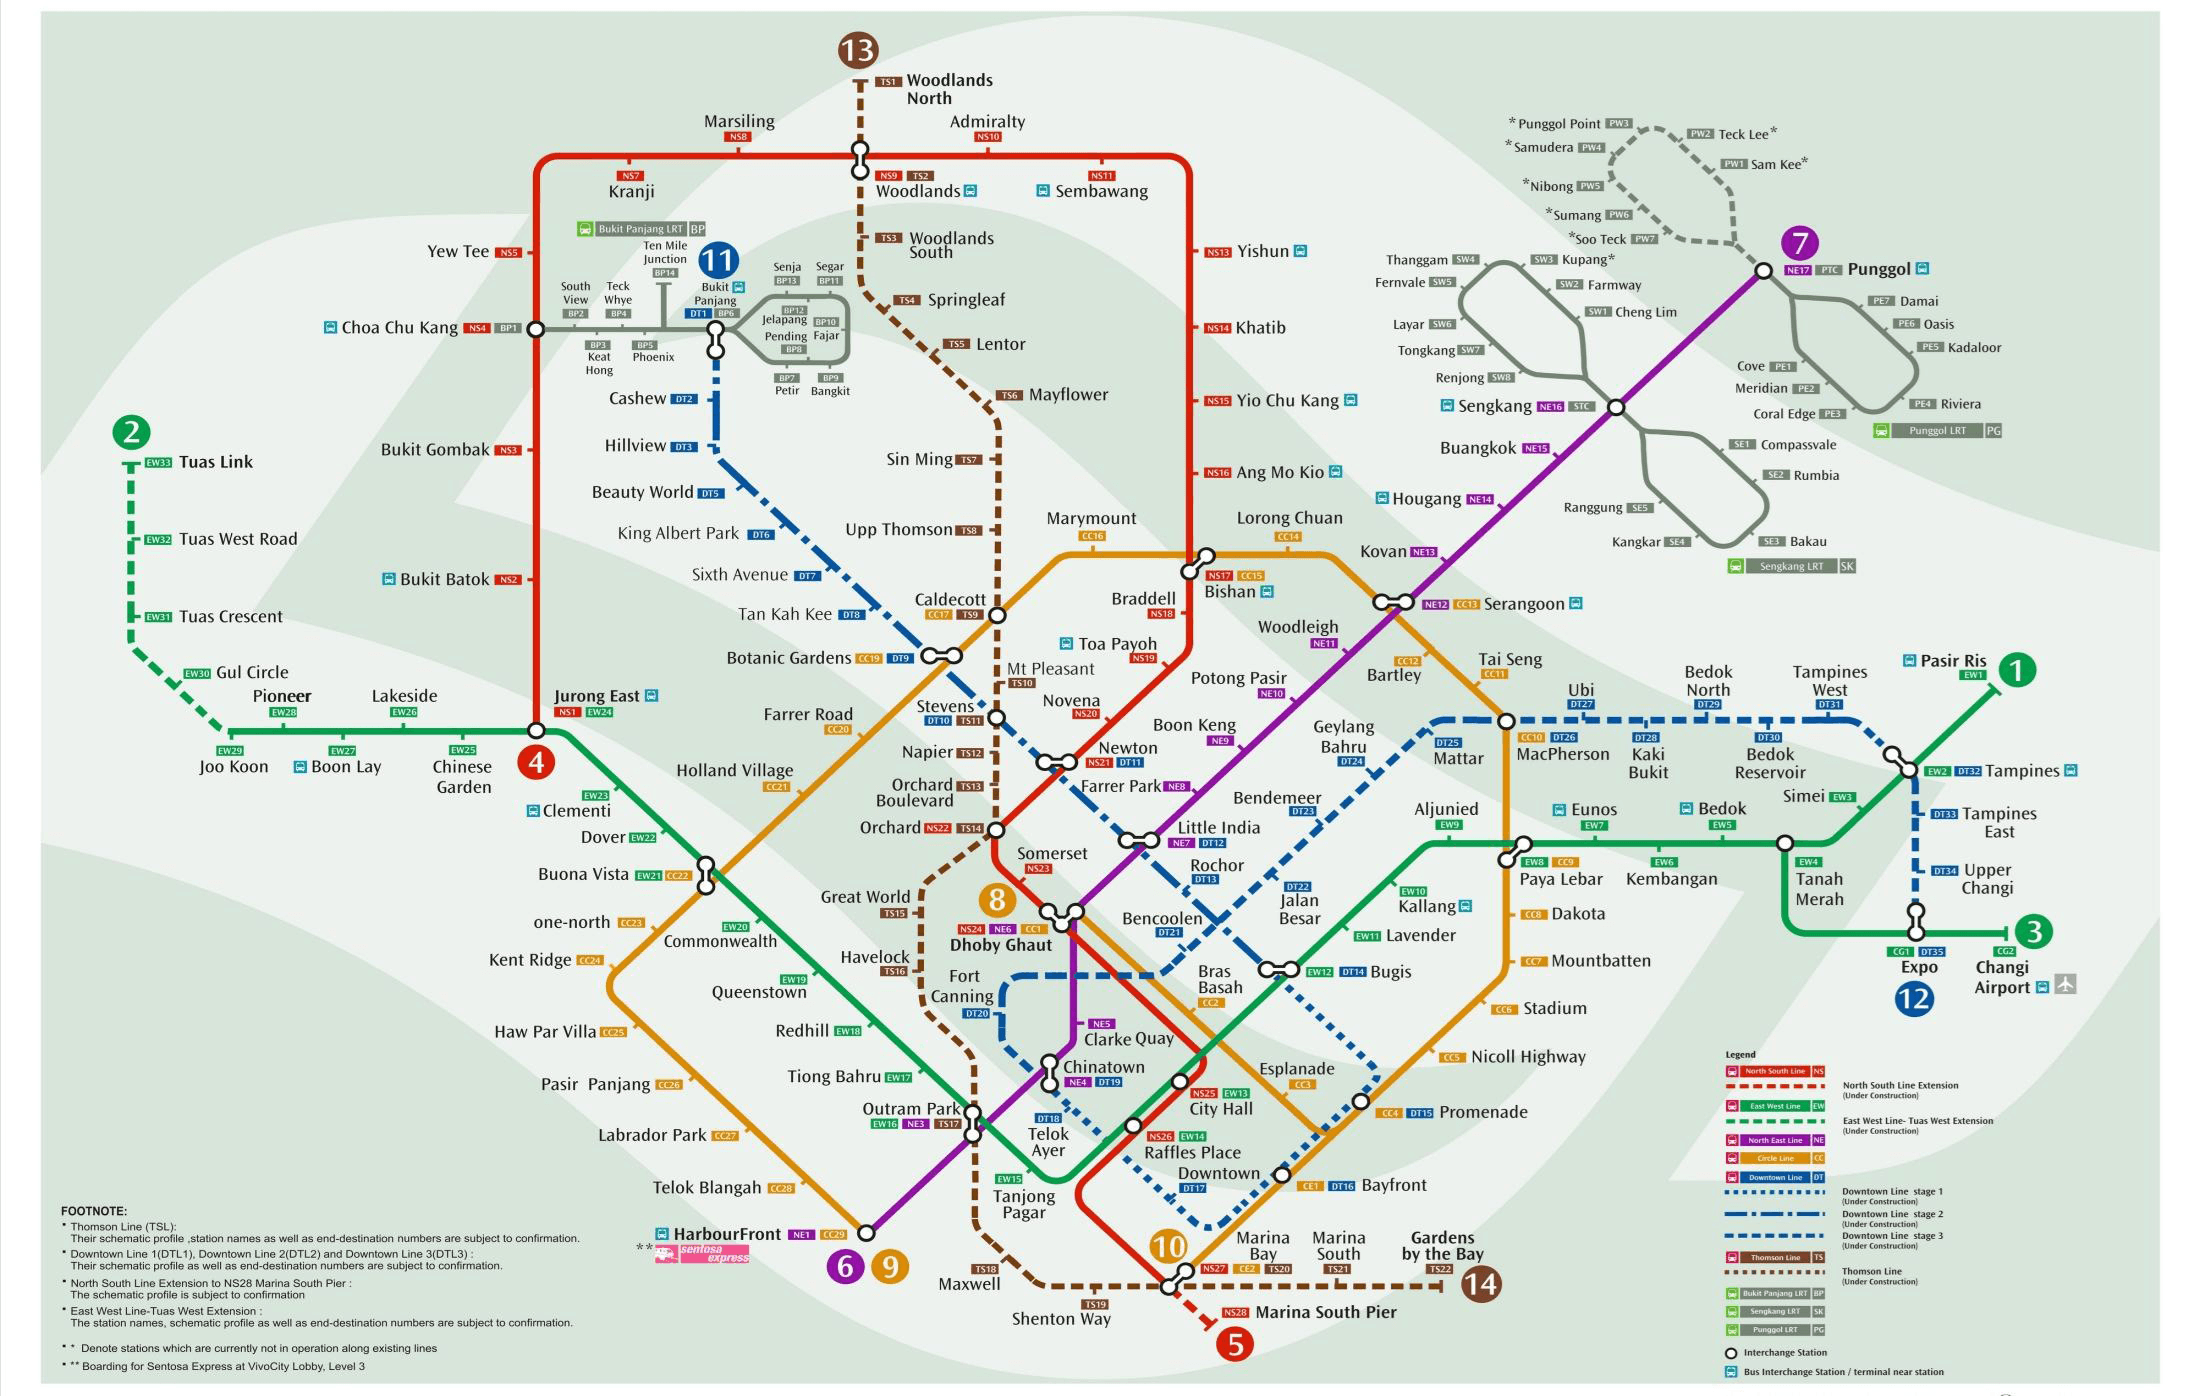 MRT Map with Downtown Line